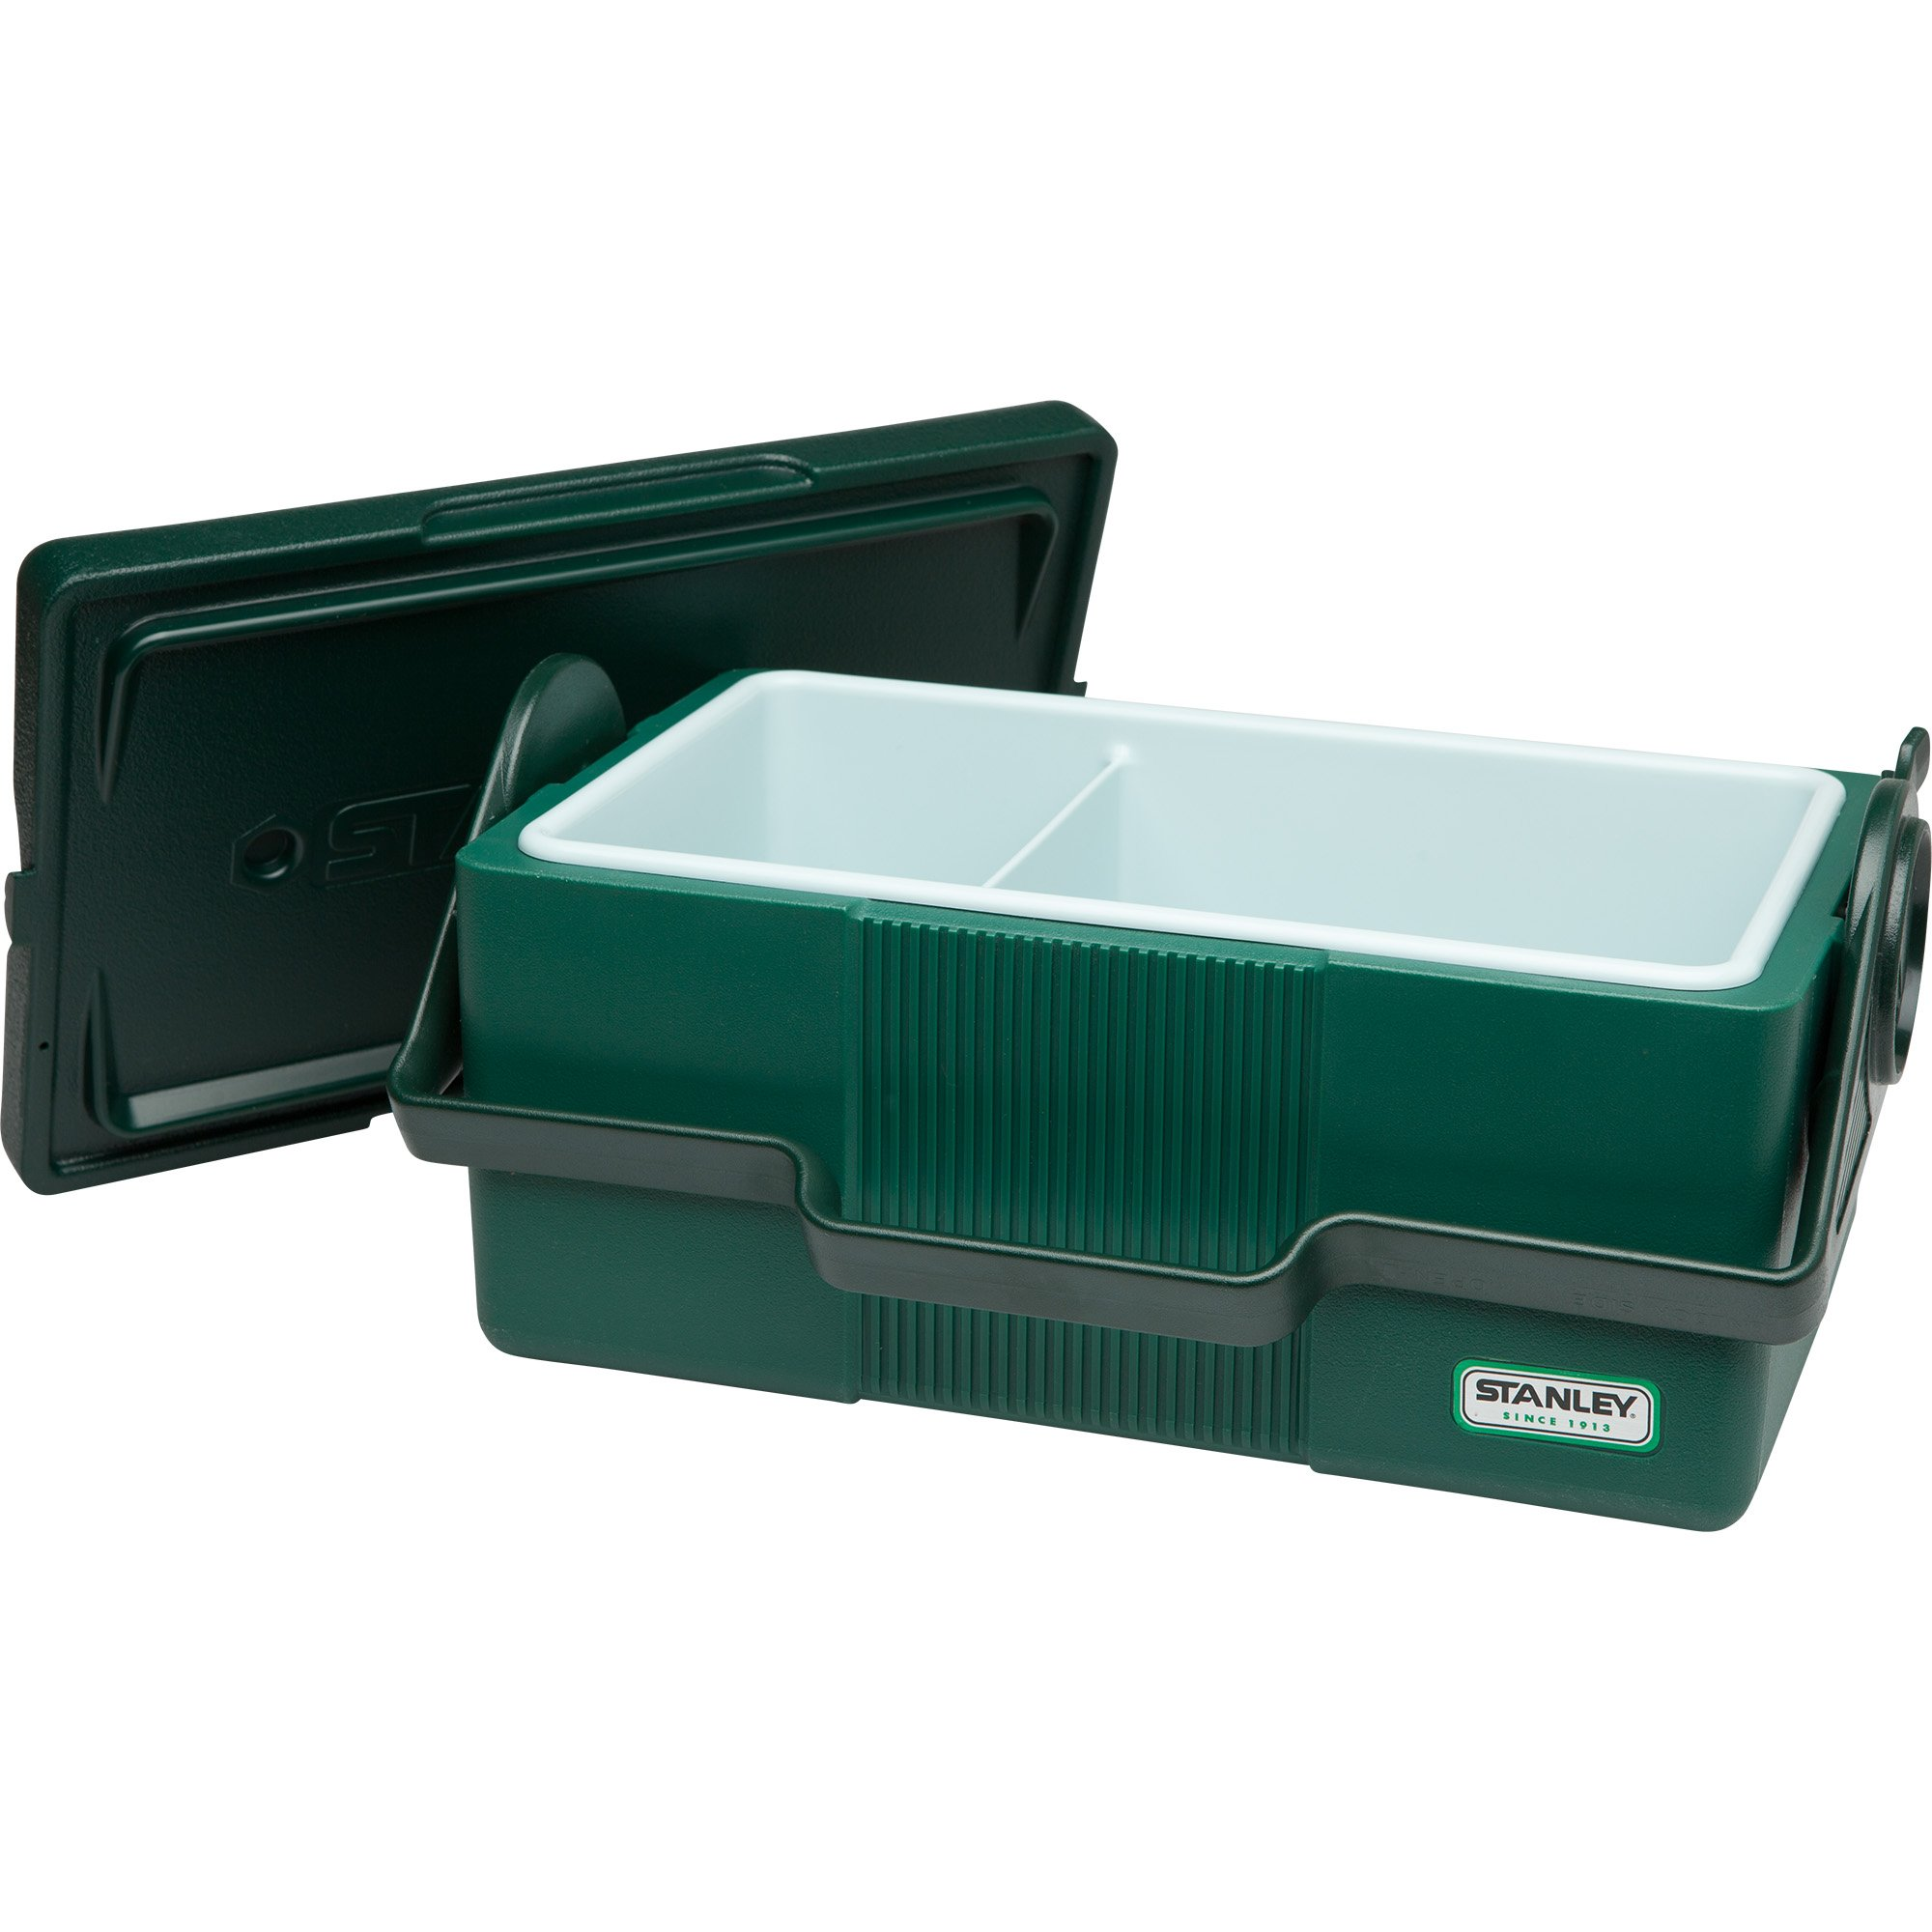 Stanley 7QT Heritage Cooler with Classic 1.1QT Vacuum Bottle by Stanley (Image #3)